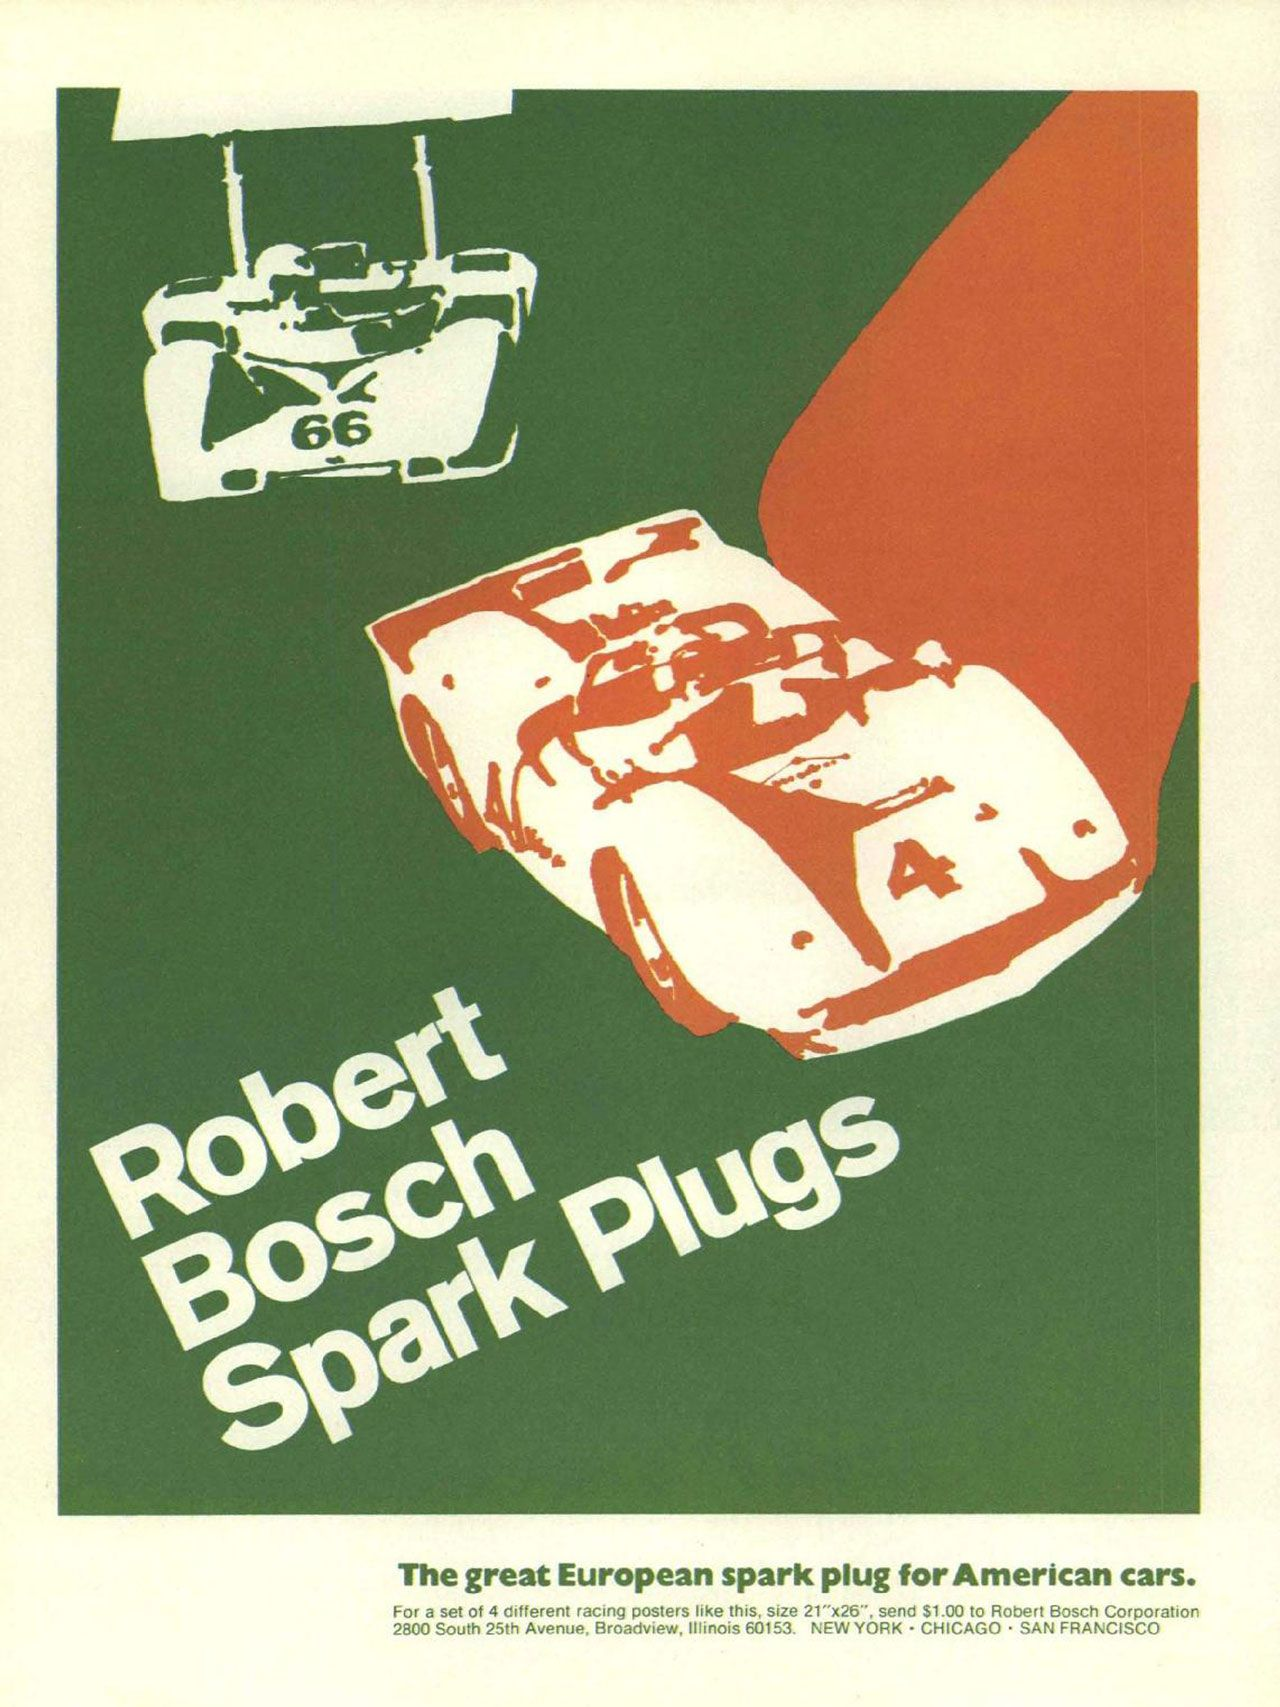 Robert Bosch Spark Plugs. The great European spark plug for American cars. For a set of 4 different racing posters like this, size 21'x25', send $1.00 to Robert Bosch Corporation 2800 South 25th Avenue, Broadview, Illinois 60153. NEW YORK • CHICAGO • SAN FRANCISCO